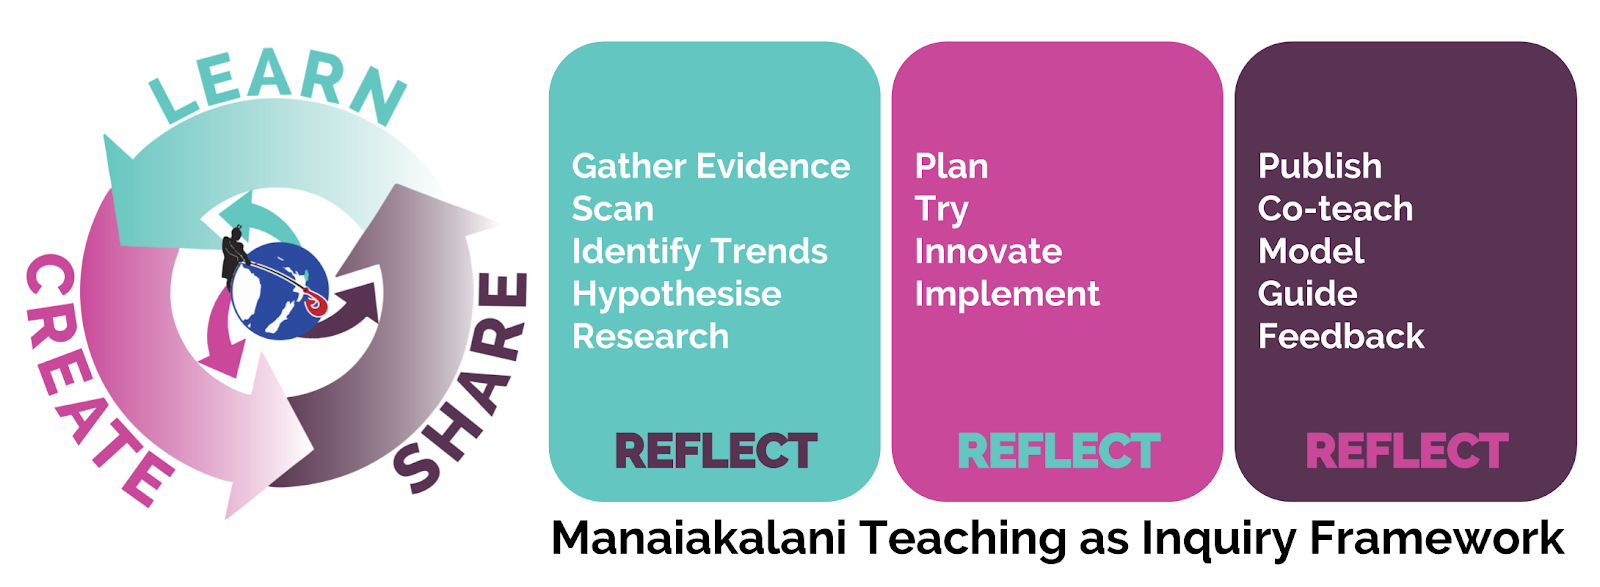 Manaiakalani Inquiry Diagram.png